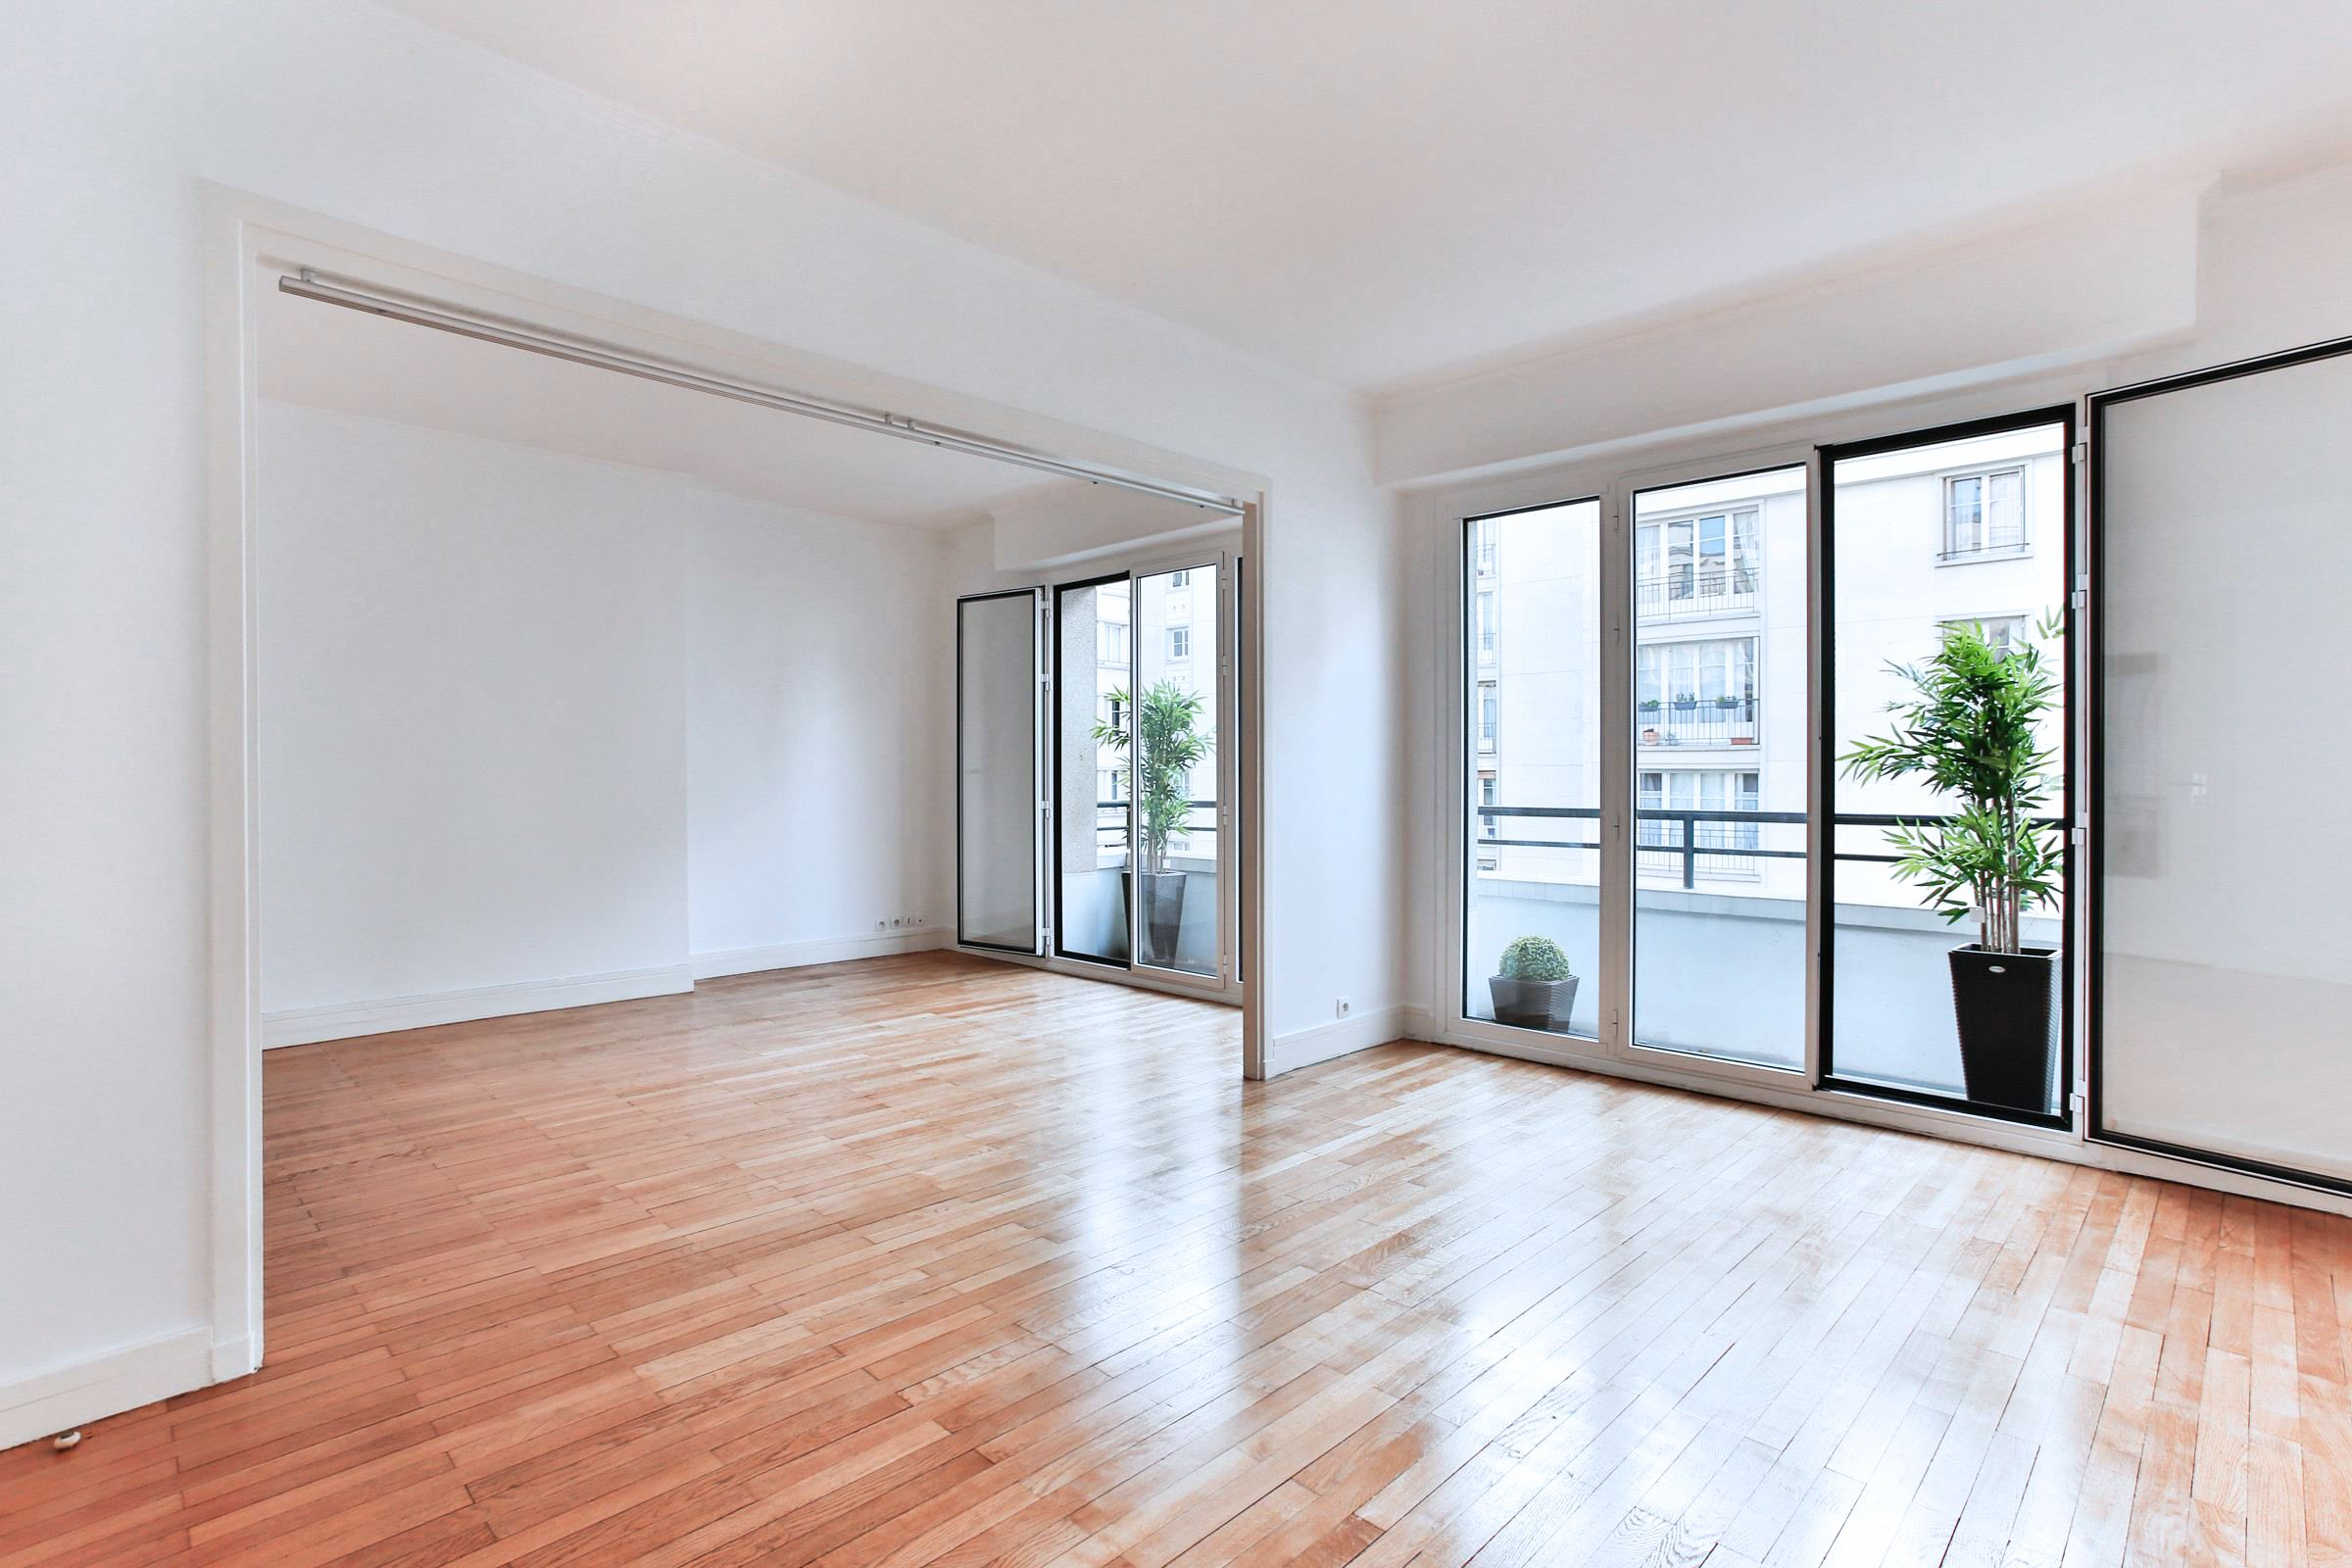 Квартира для того Продажа на Paris 17 - Pereire. Apartment of 74 m² + balcony. Sunny and good lay-out. Paris, Париж 75017 Франция